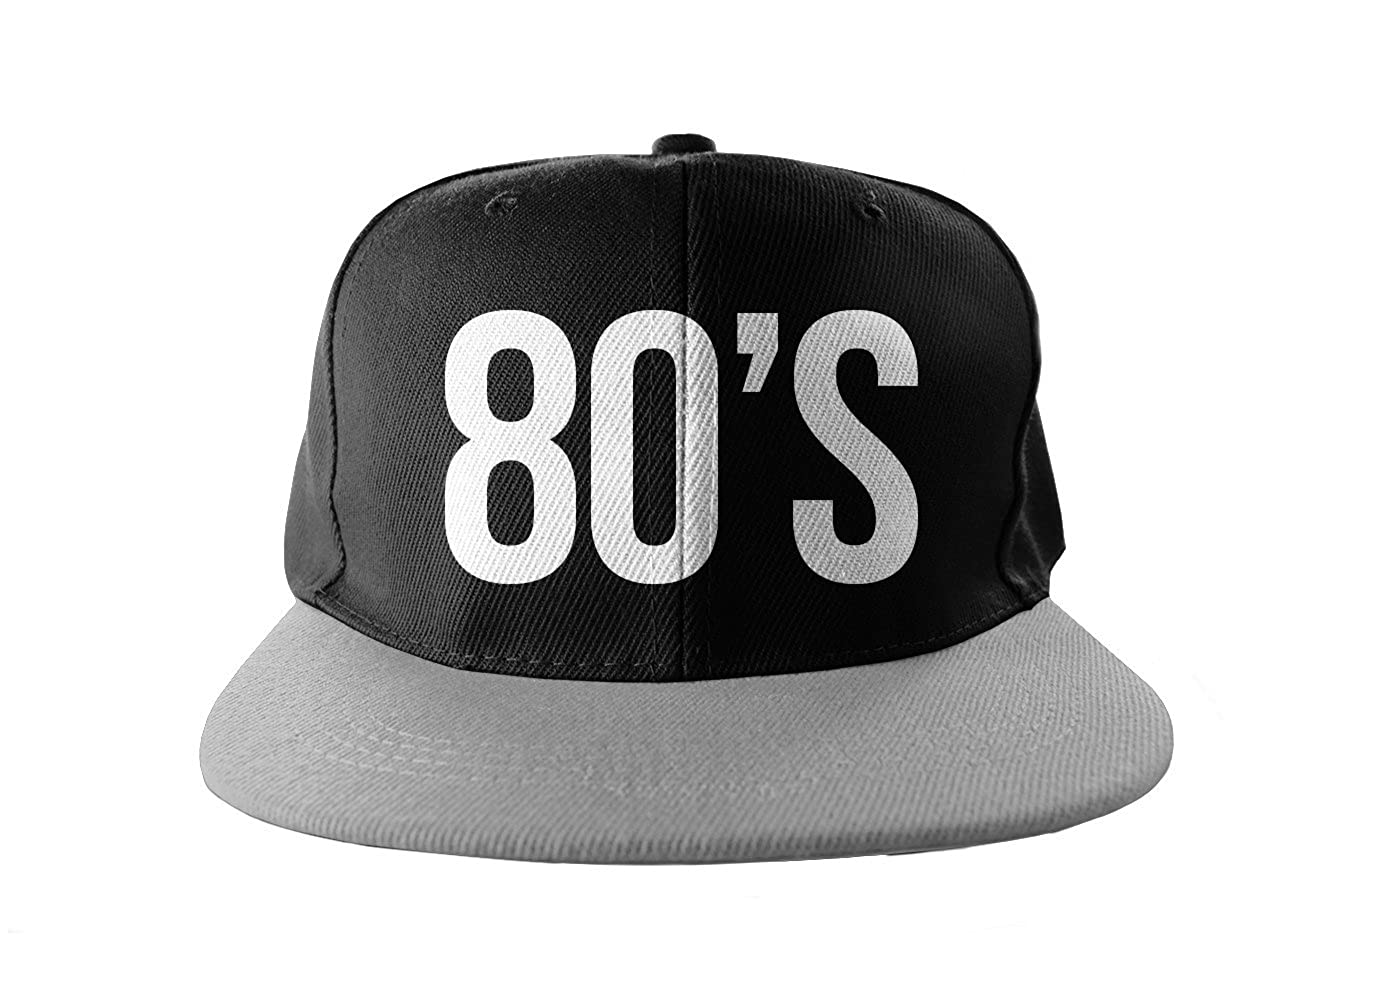 59b77d2b01f Amazon.com  80 s Cool Swag Hip Hop Print Snapback Hat Cap Black Grey   Clothing